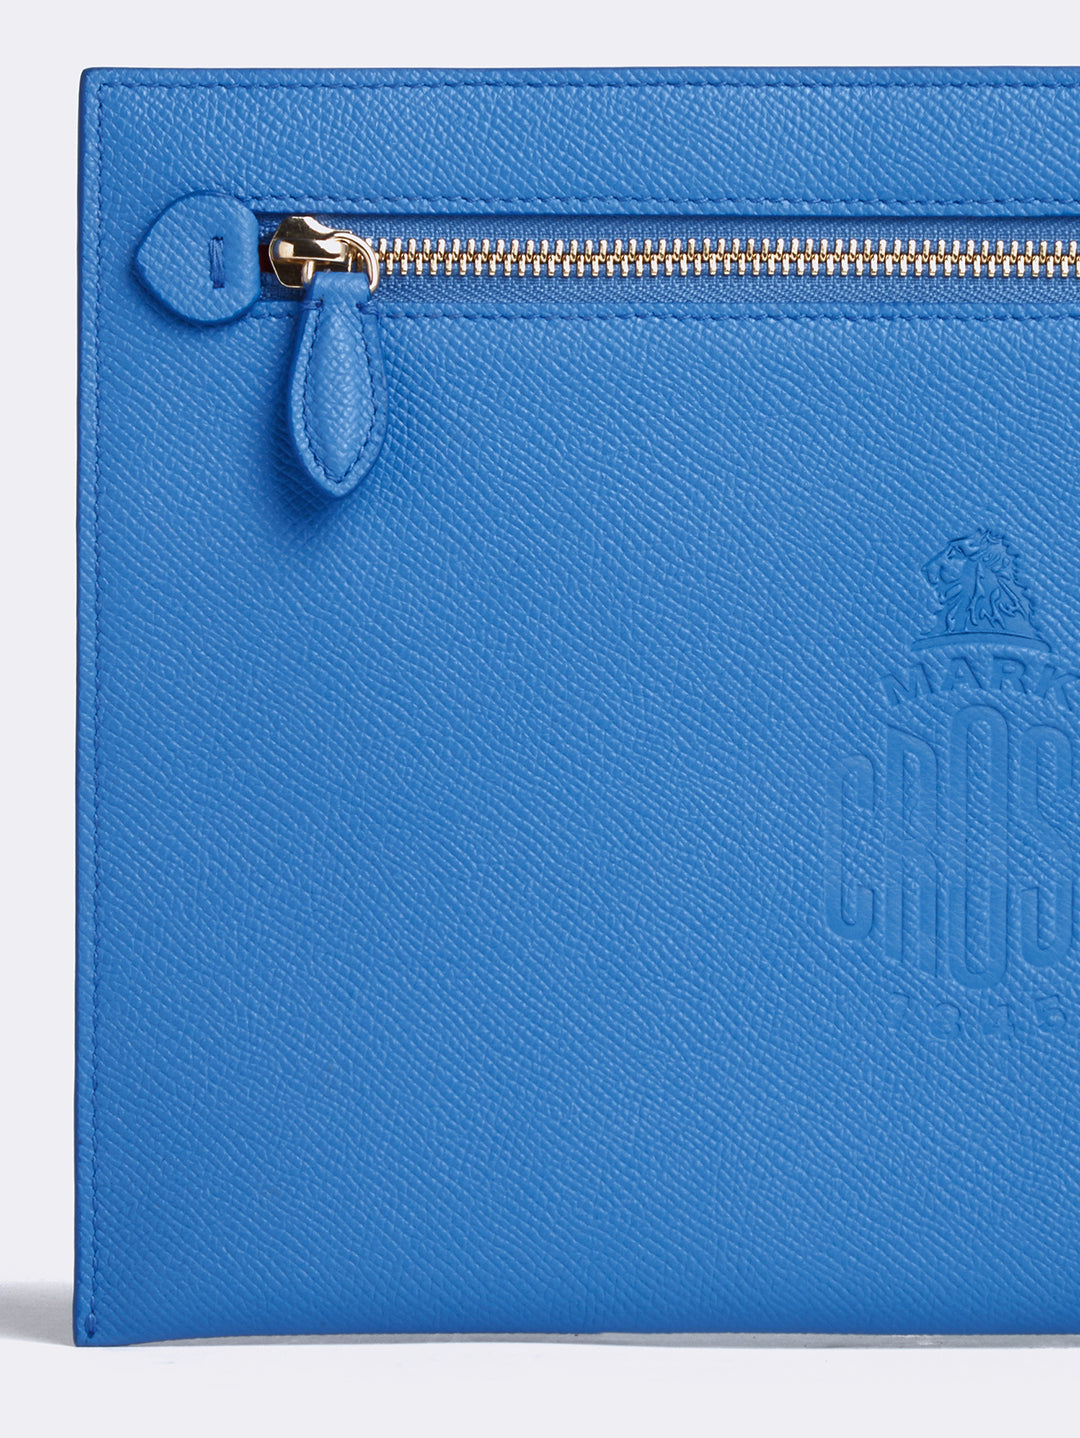 Mark Cross Donnelly Leather Pouch Soft Saffiano Regatta Blue Detail